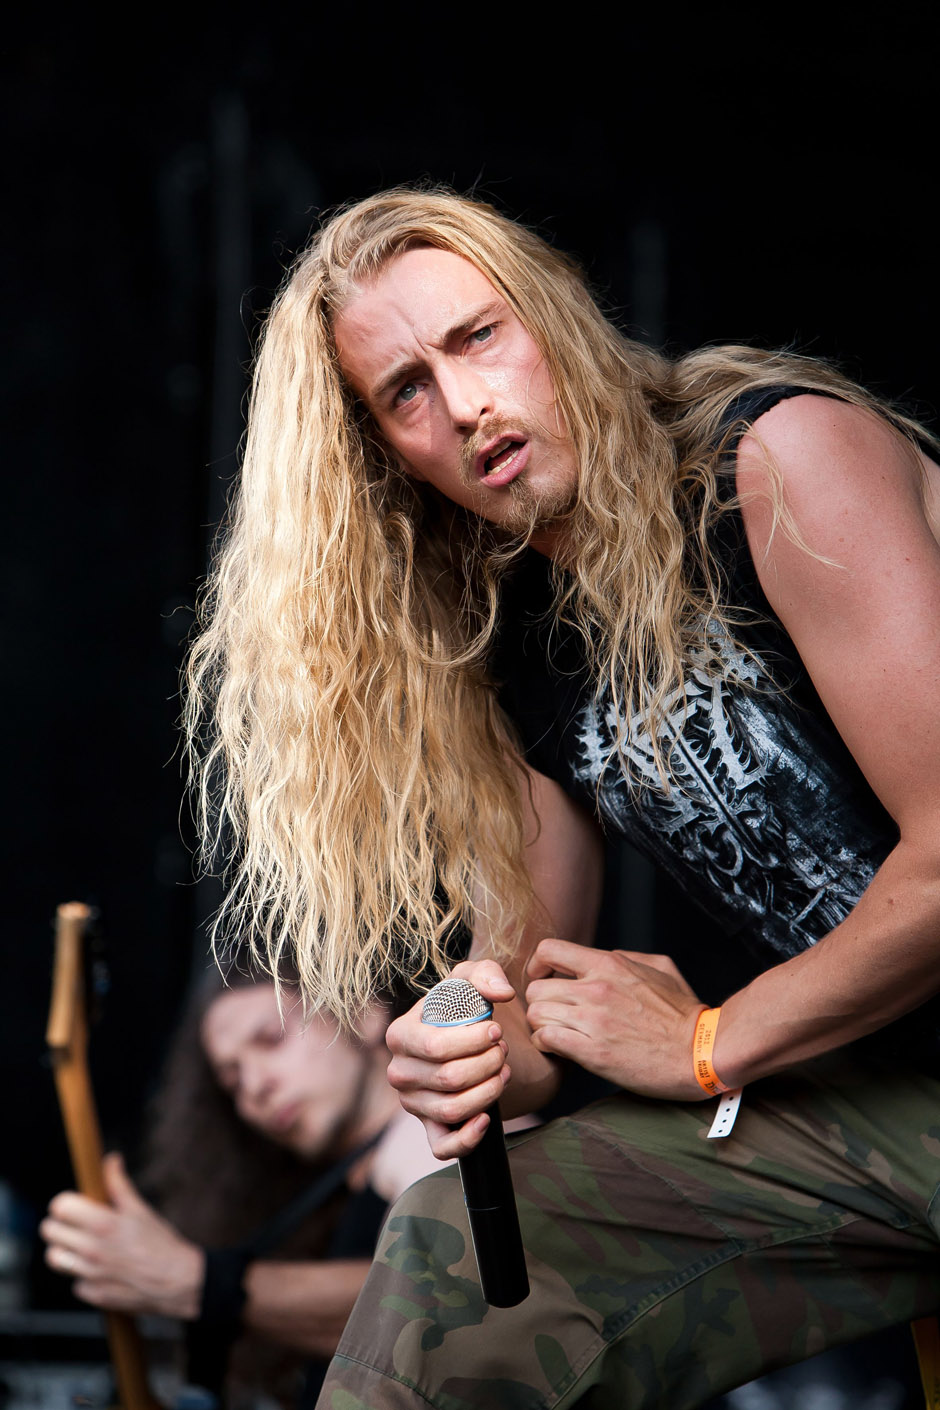 Arafel live, Extremefest 2012 in Hünxe